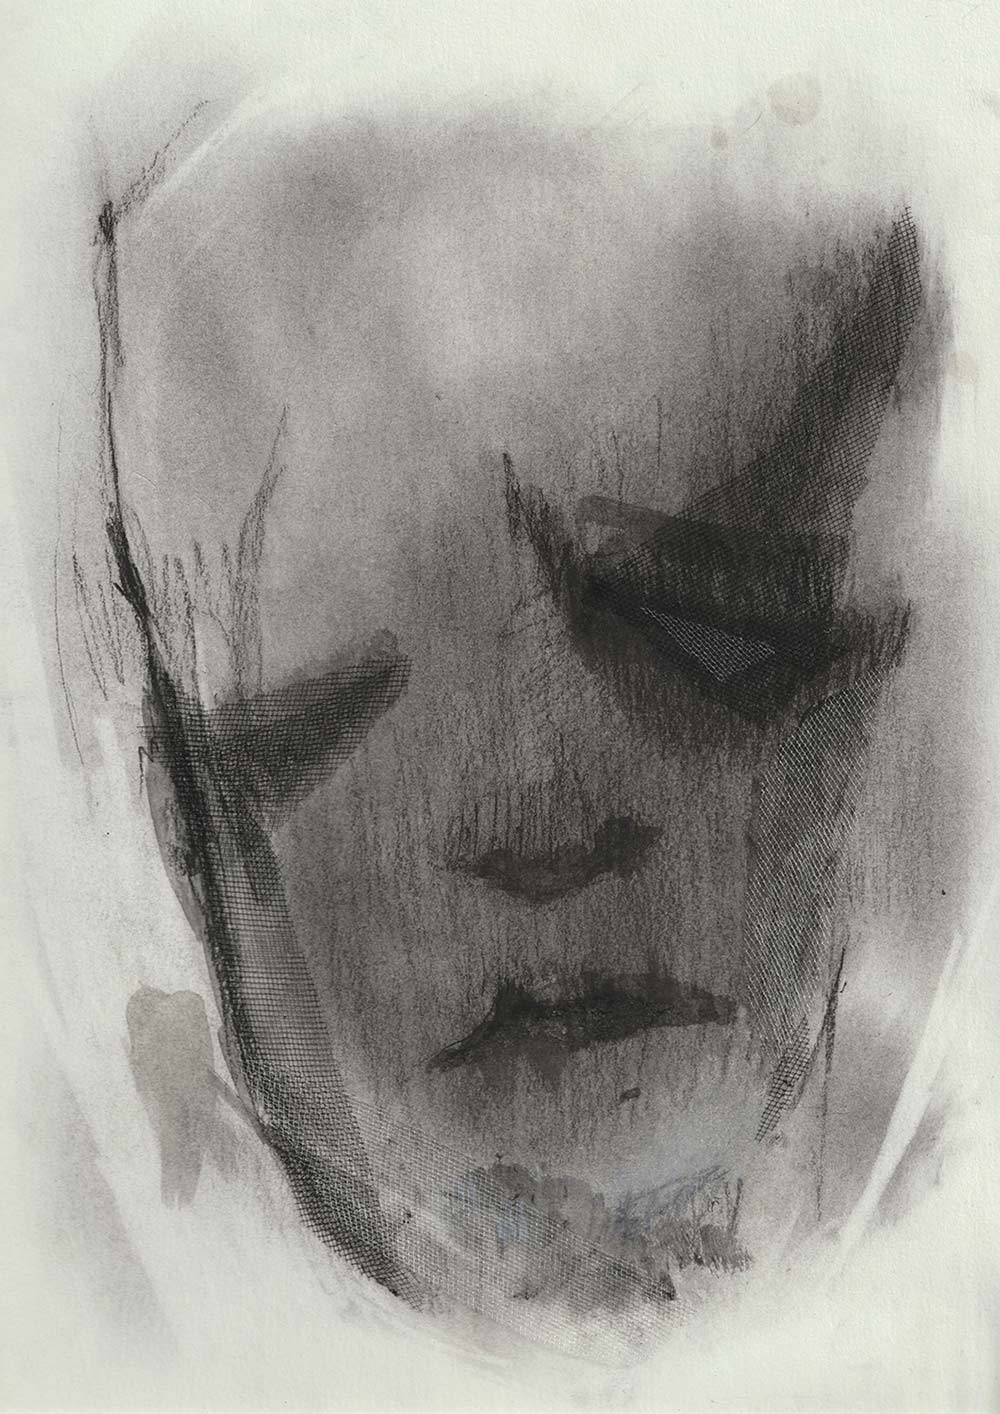 Drawing with various black media on white paper. Drawn elements for a face-like shape.